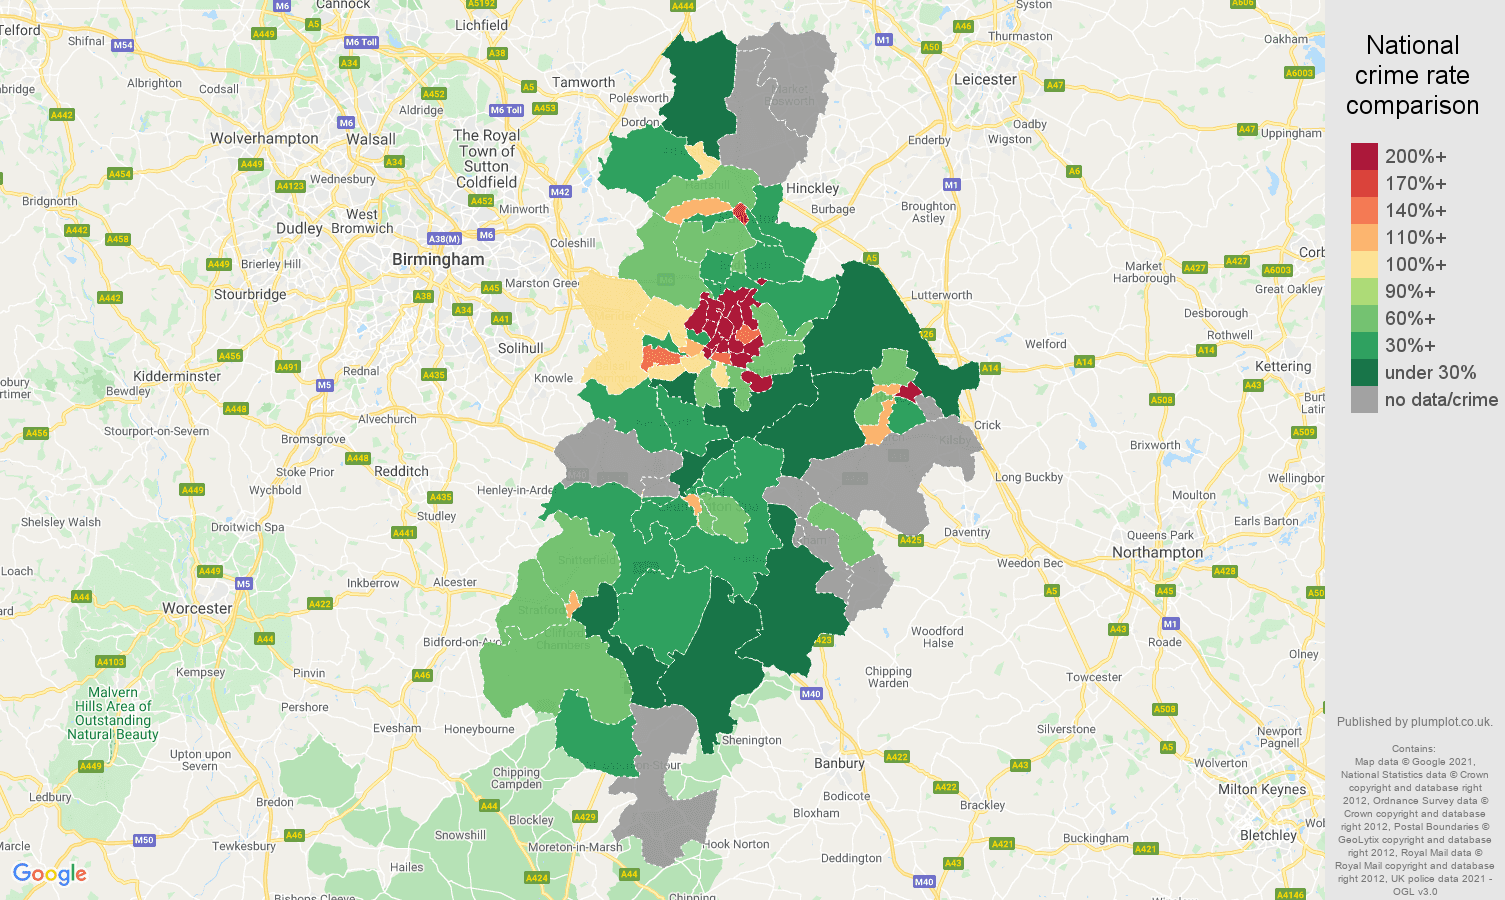 Coventry robbery crime rate comparison map